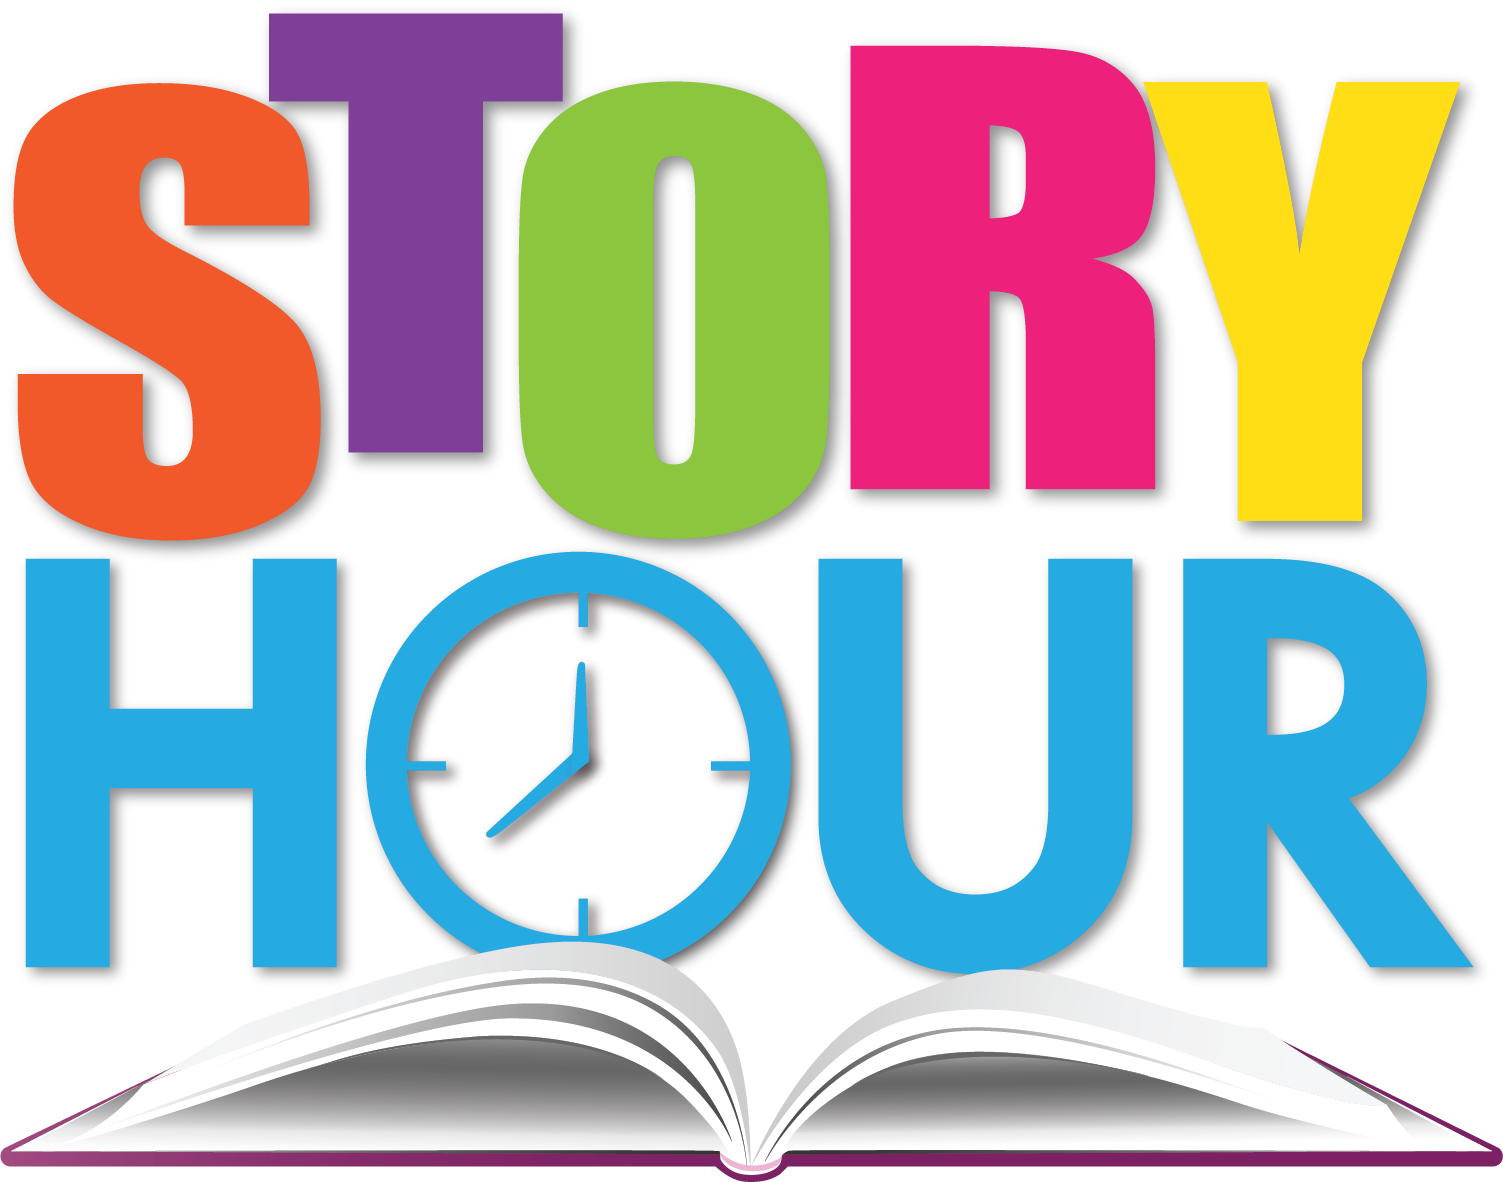 Story hour is back!